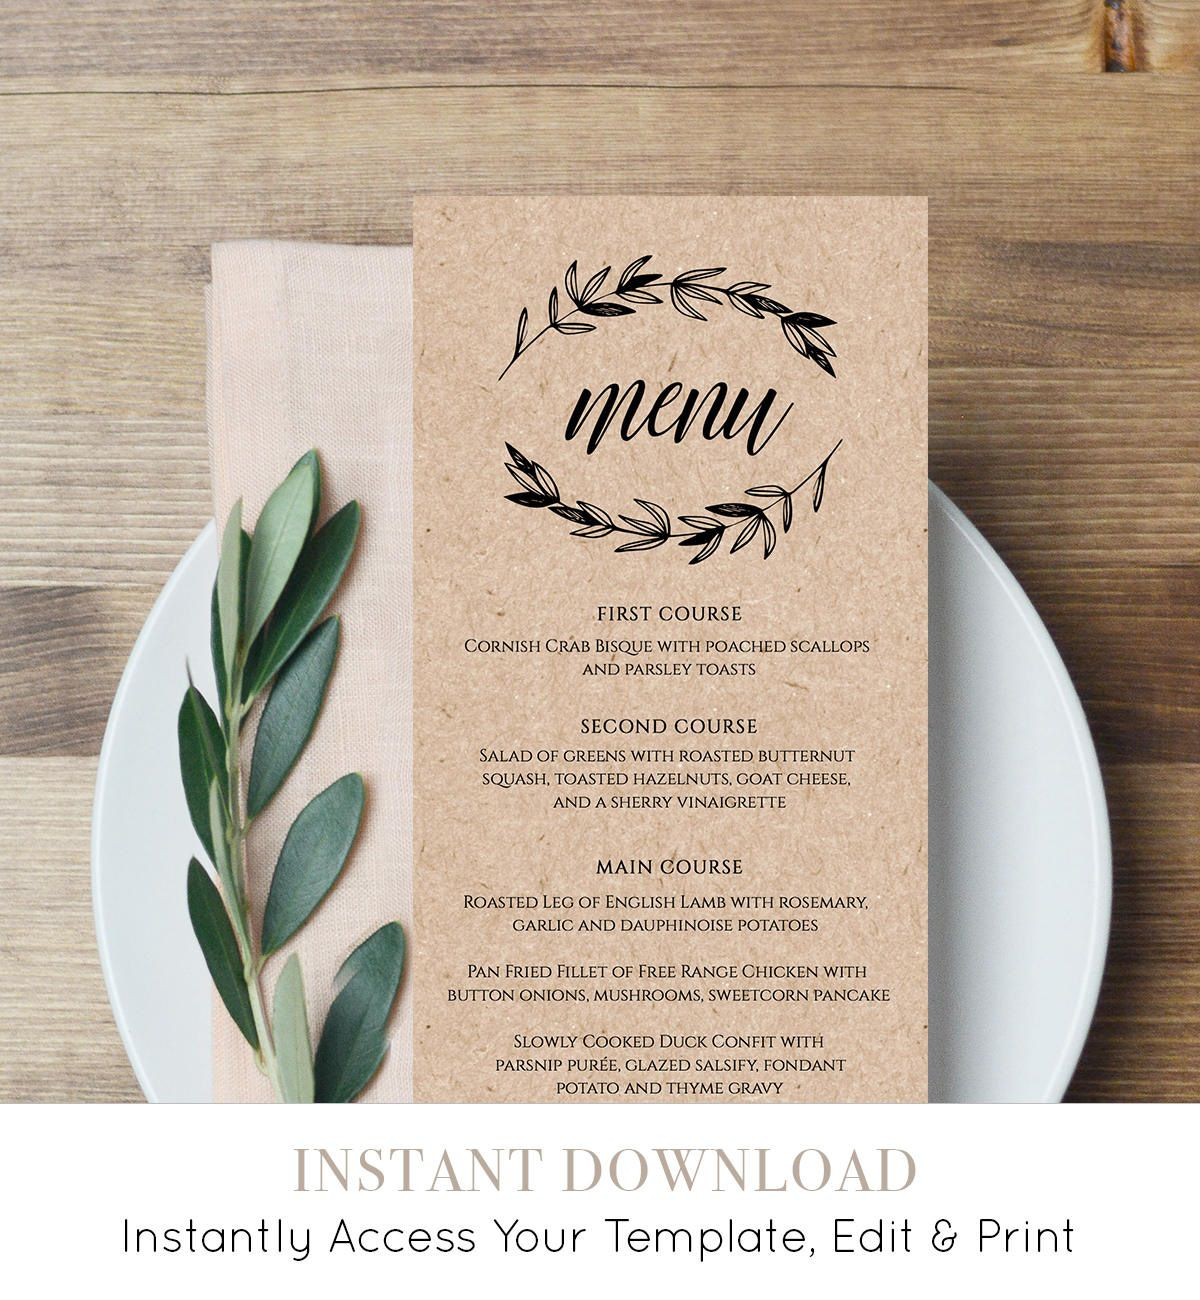 008 Dreaded Free Printable Menu Template High Def  For Dinner Party FamilyFull